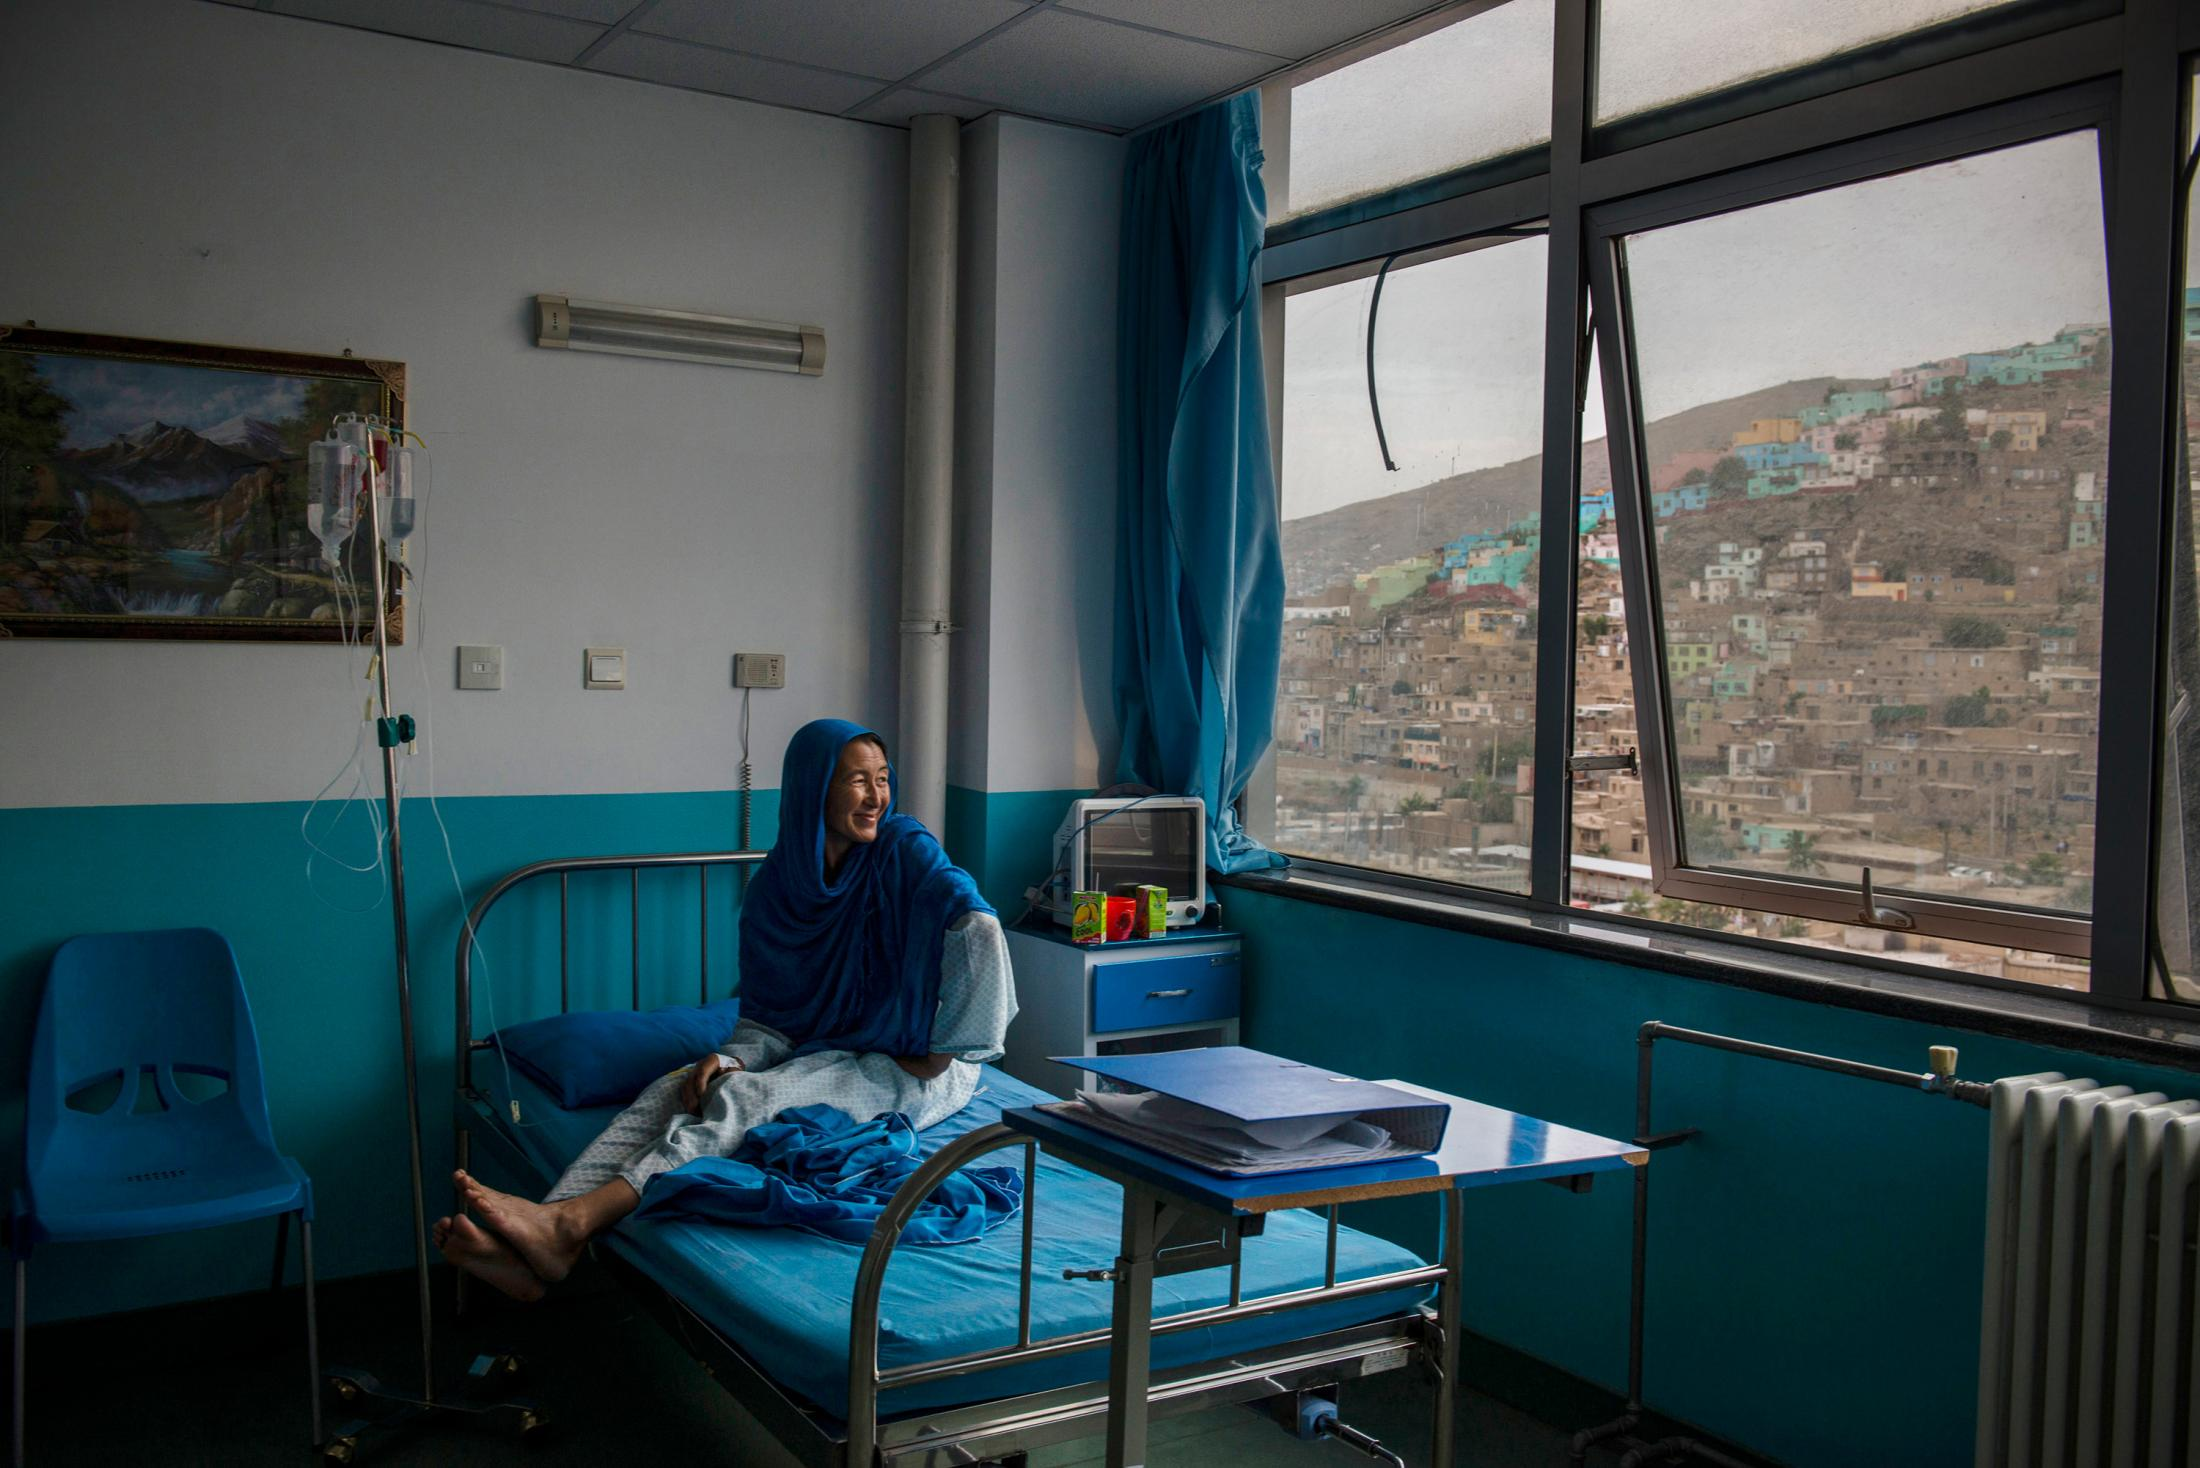 KABUL, AFGHANISTAN | 2017-07-15: Jamila (41) is prepared by the doctors and nurses for her first chemo treatment. Jamila and her husband travelled all the way from their village in Kunduz to Kabul, after the growing tutor in her left breast spread to her armpit and the pain became unbearable. In Kabul she was diagnosed with breast cancer stage four that has metastasis. She doesn't have long to live and she knows that. While holding on to a smile that once in a while disappears out of pain, talks about her rare marriage, a marriage out of love, with the man who is 6 years younger than her. Before leaving her village and knowing that she has probably reached the end, Jamila found her husband, whom she's still in love with, a wife. Someone who will continue to love and care for him and will be a mother to her 2 children.